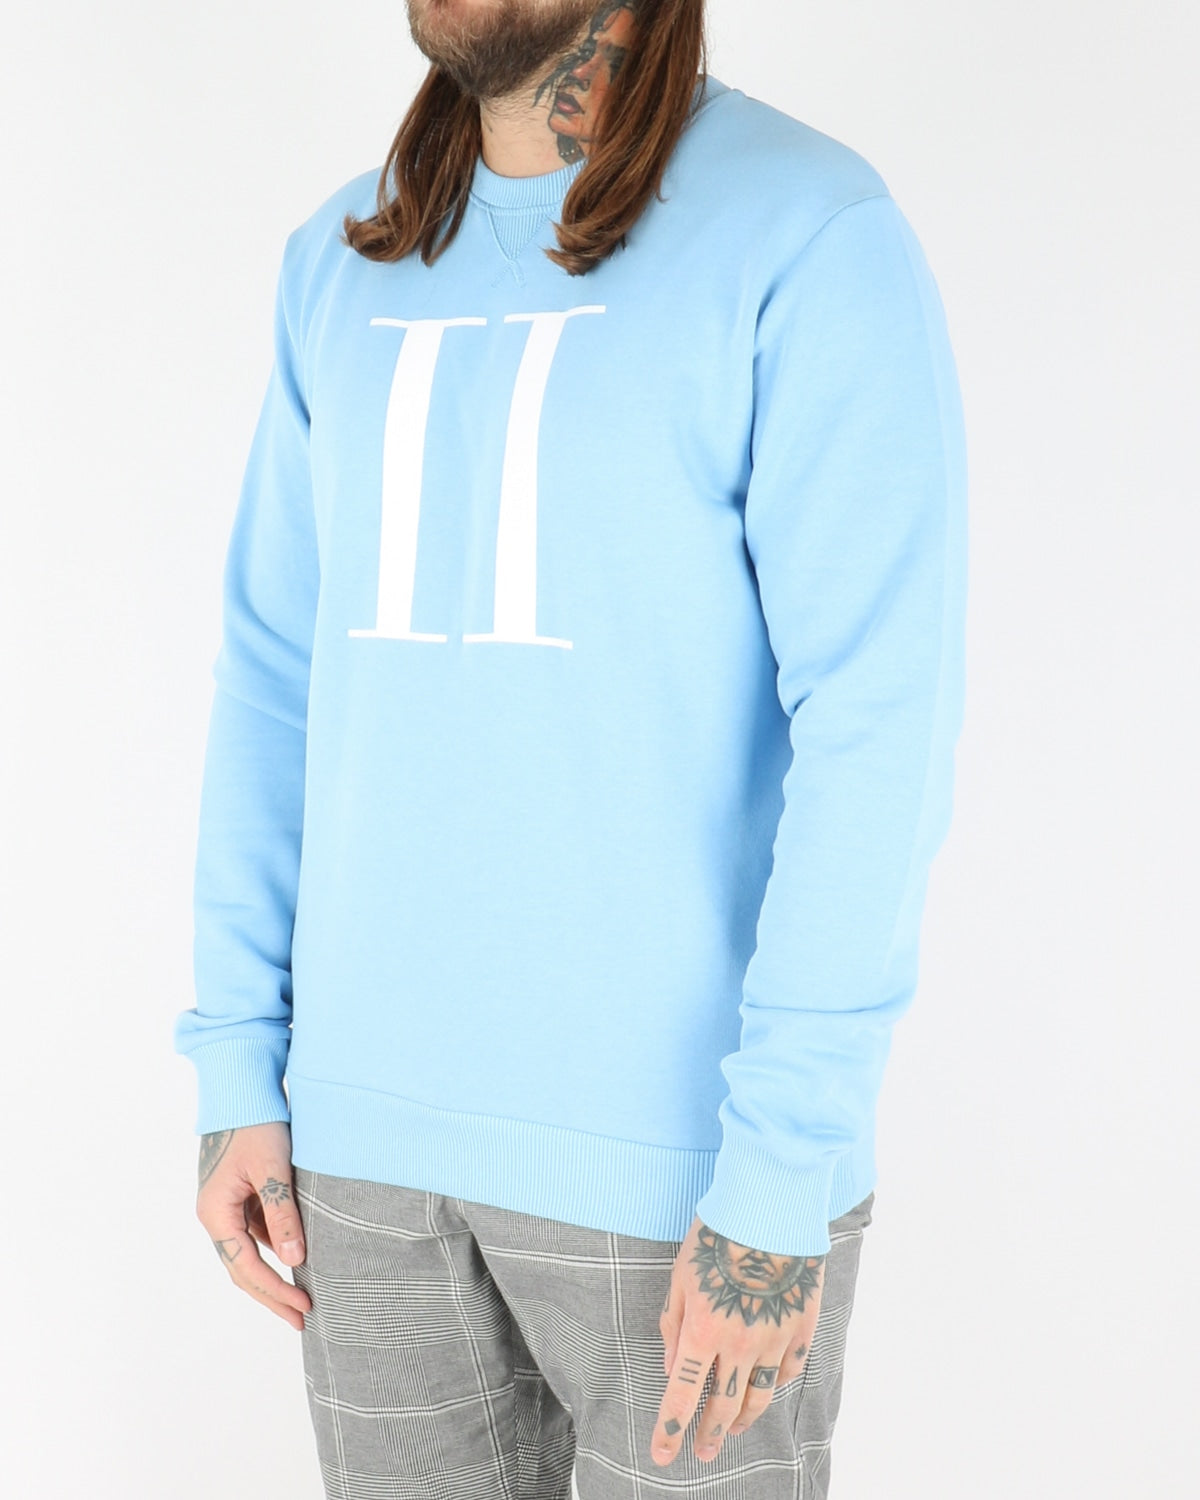 les deux_encore light sweatshirt_placid blue white_view_2_3